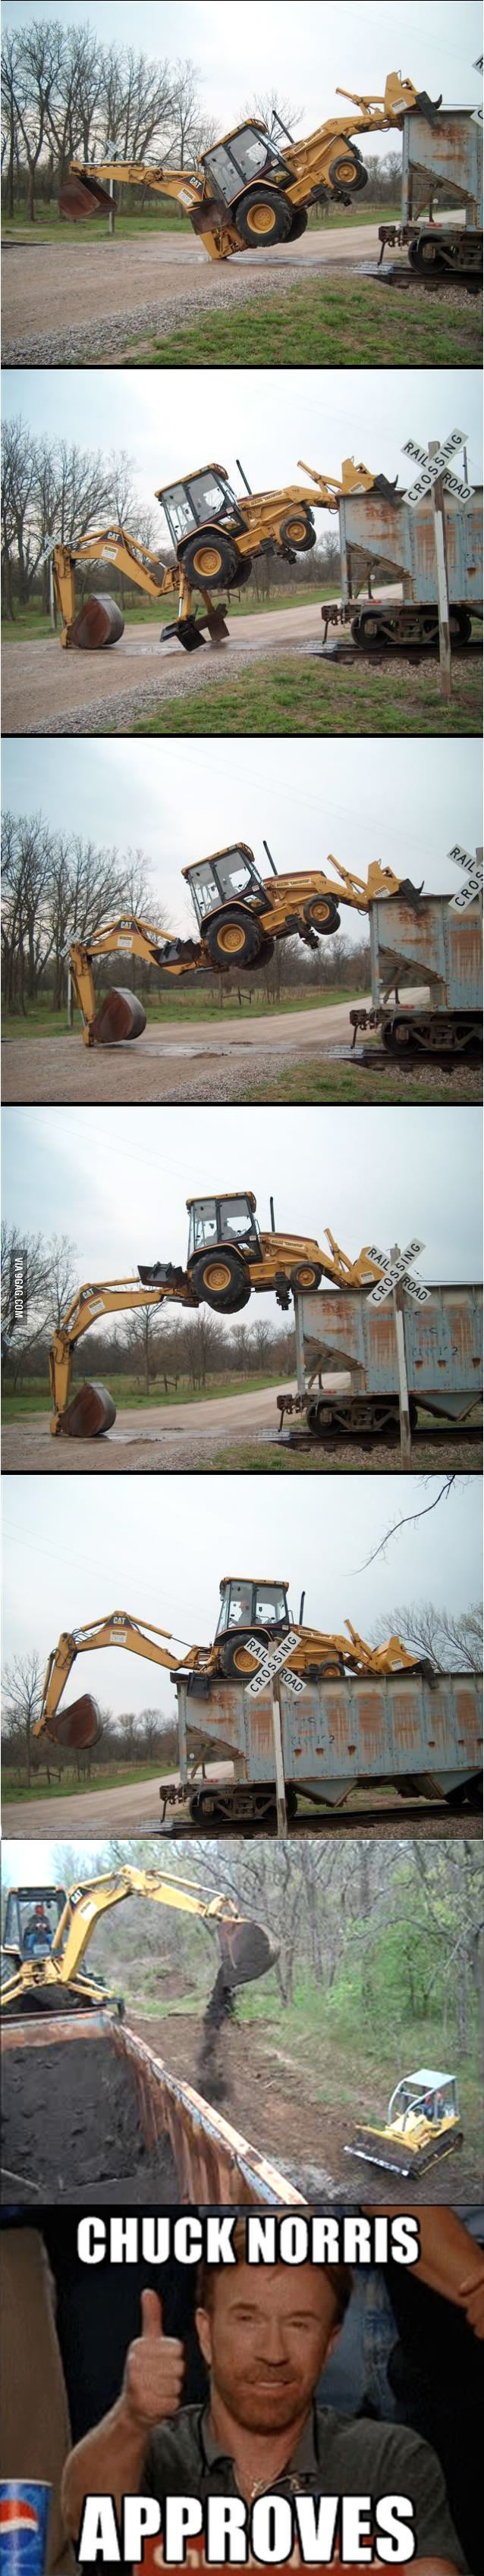 Loading a backhoe without a ramp